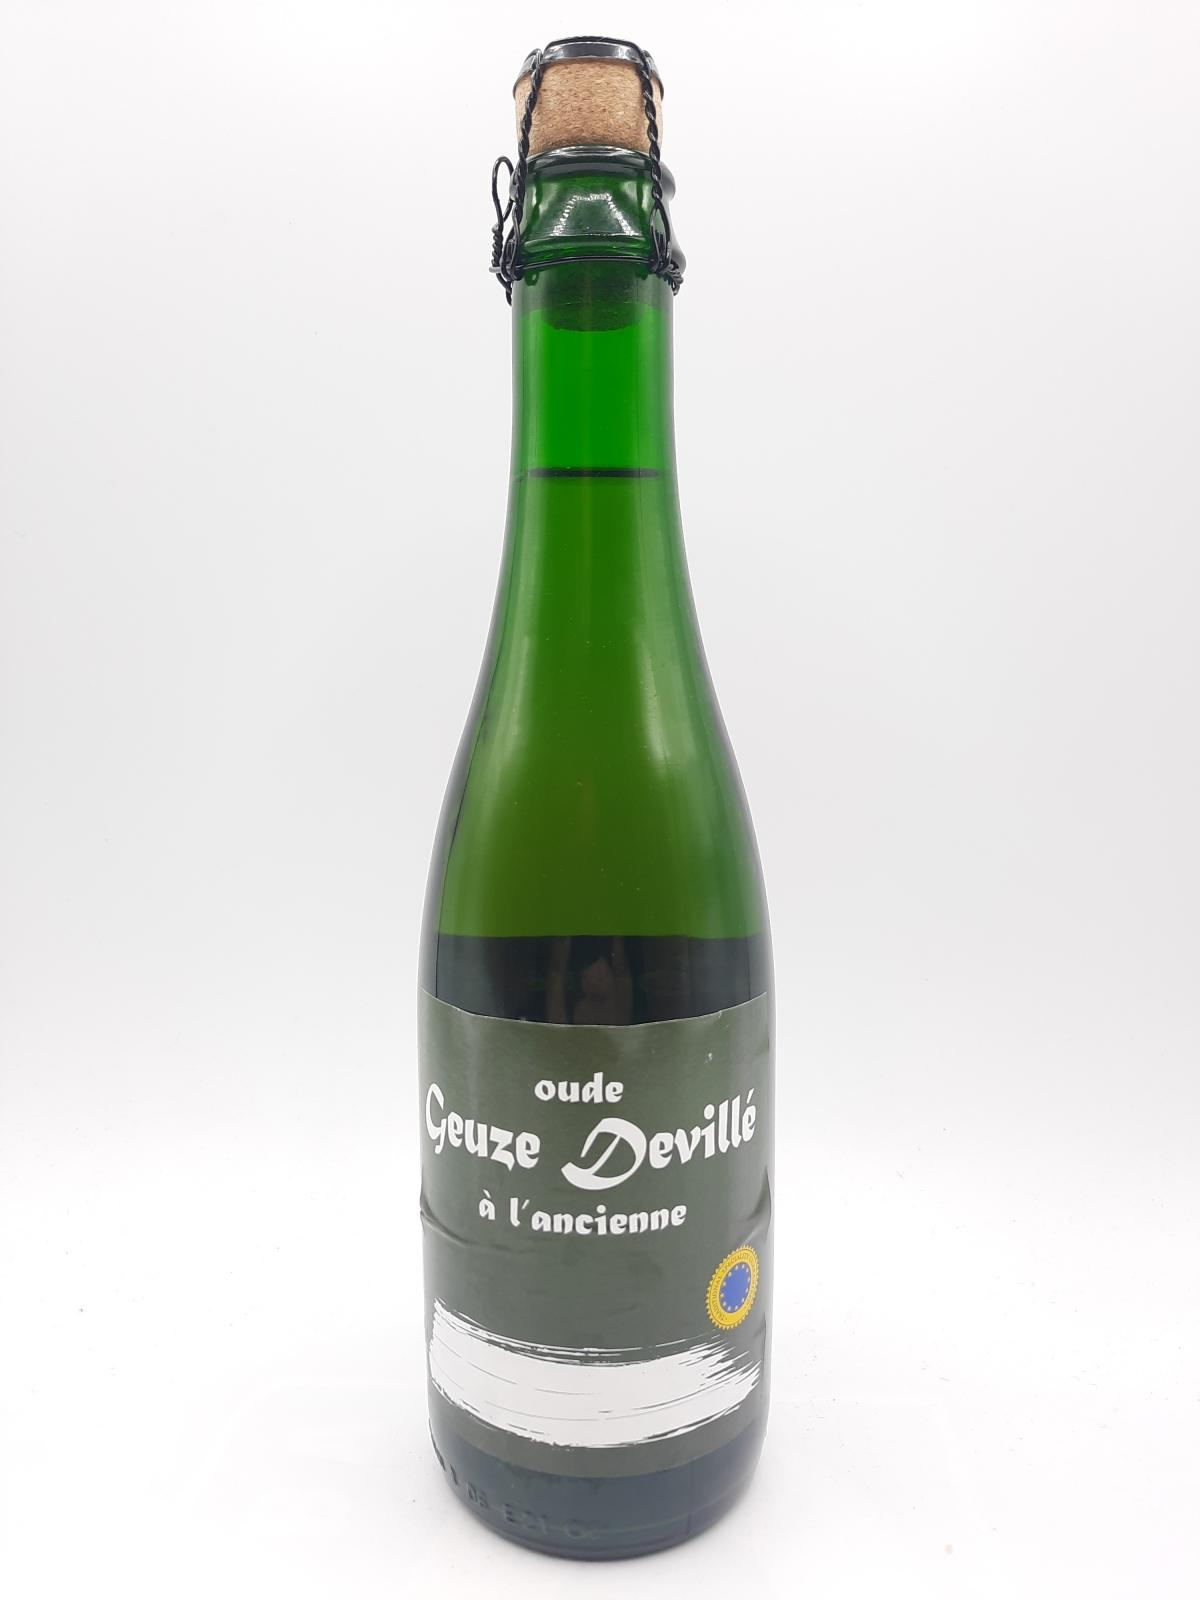 Img Oude geuze deville